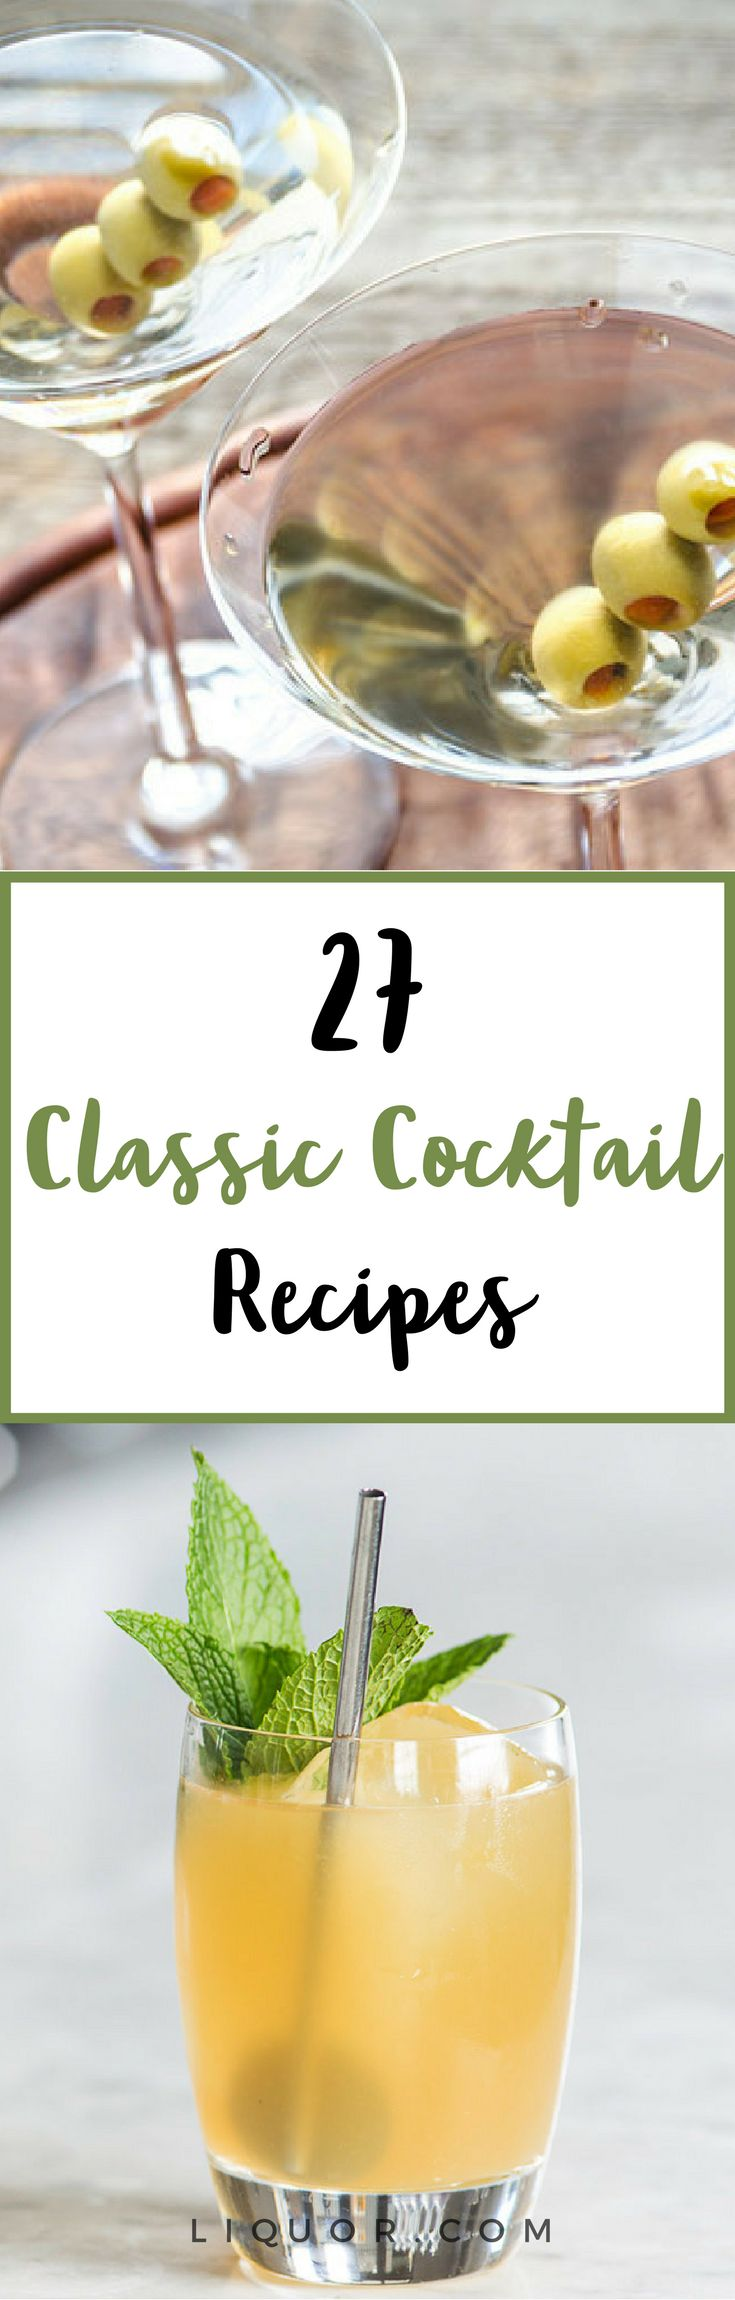 These 27 #classic drinks are the #cocktails you should know how to make.